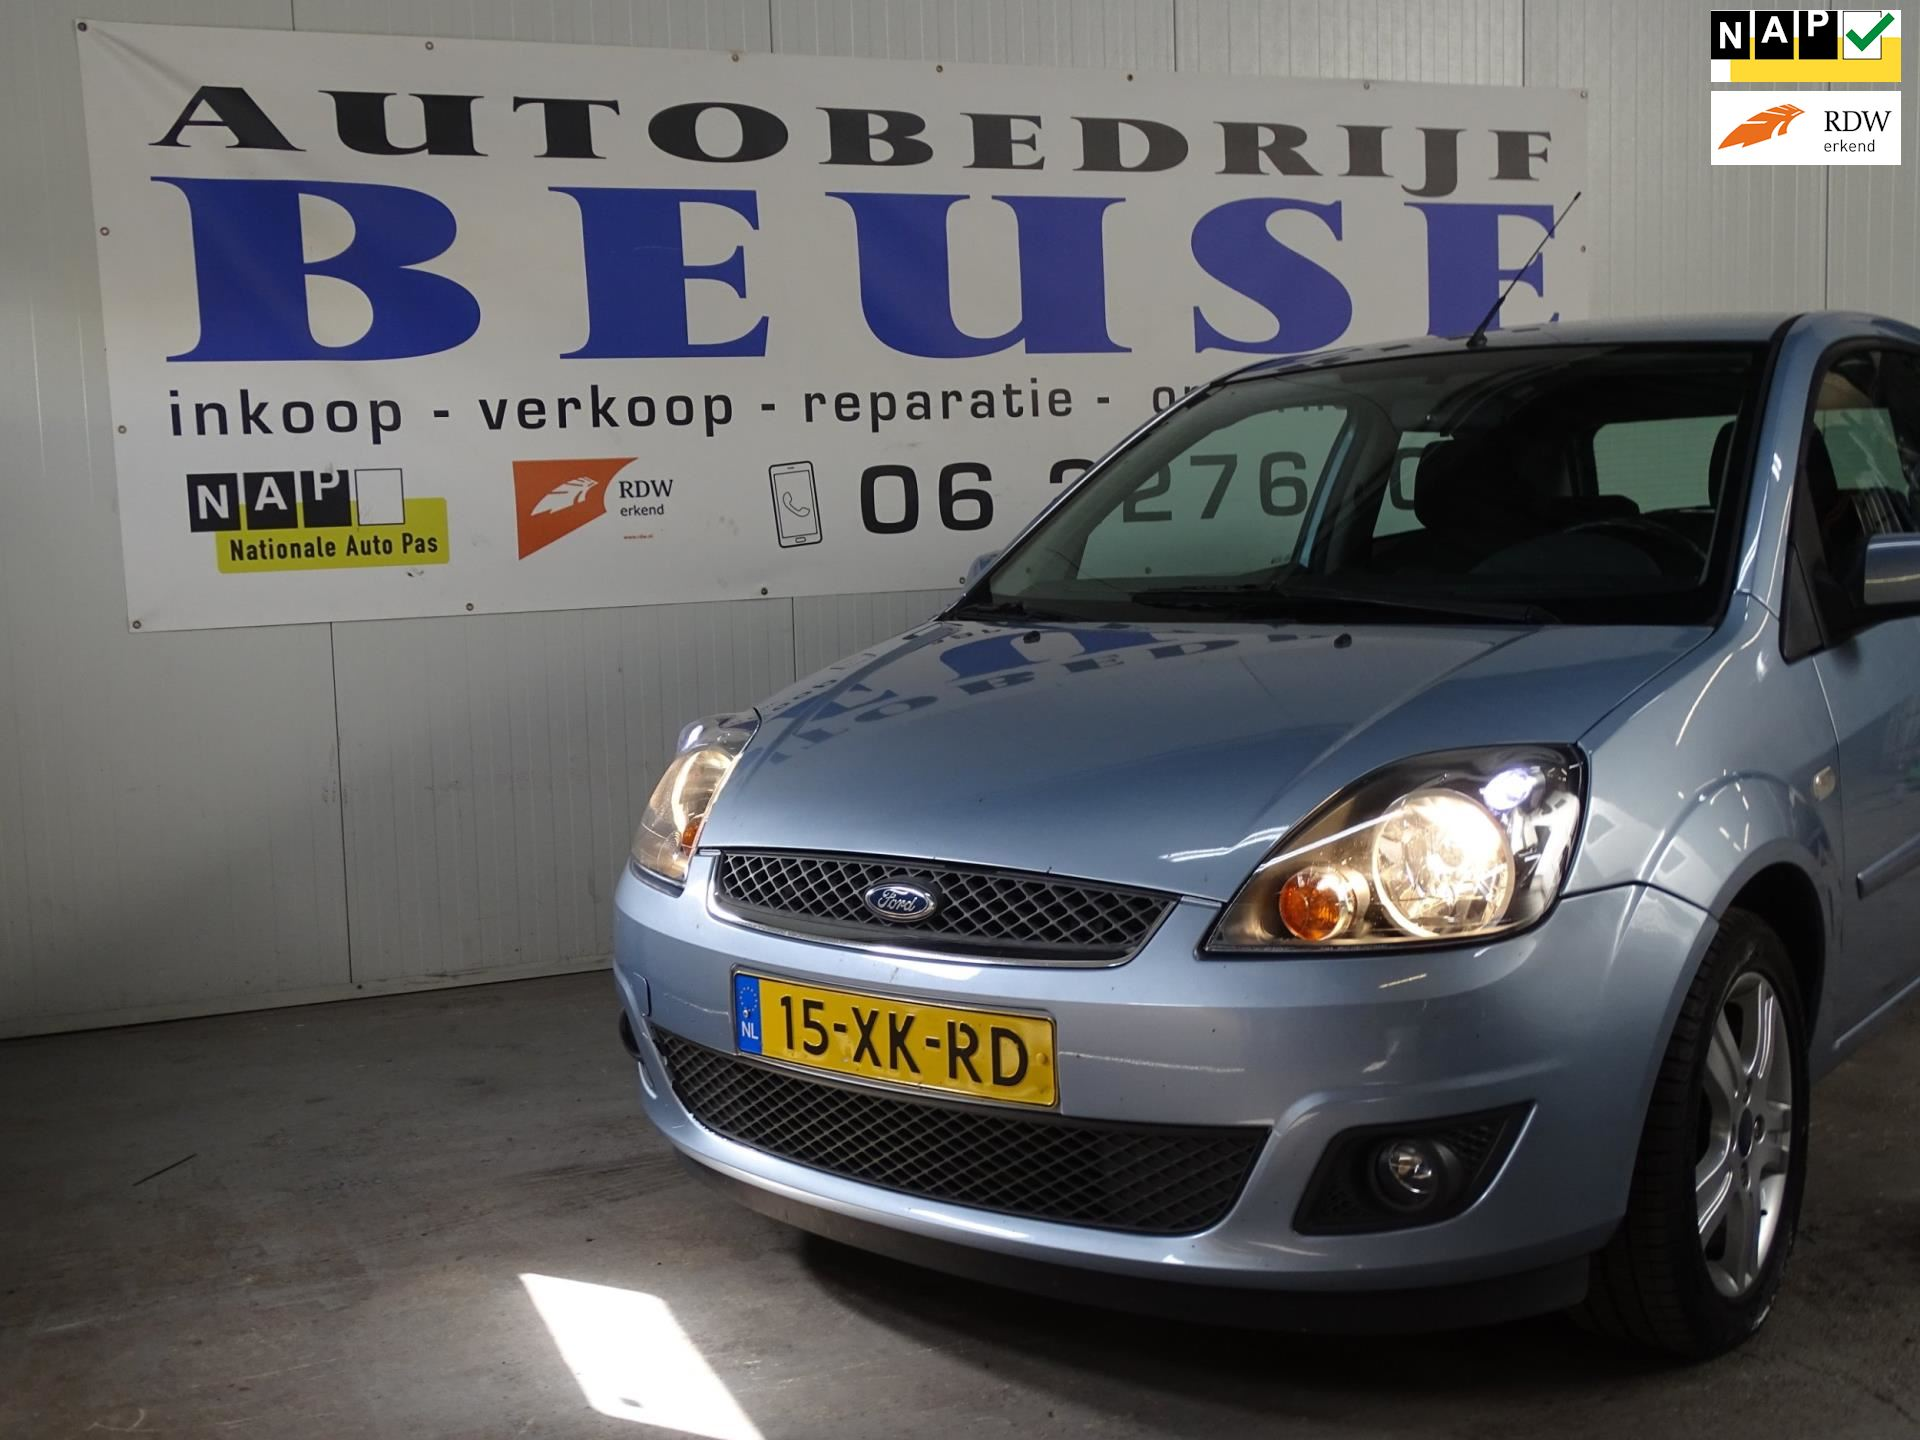 Ford Fiesta occasion - Beuse Auto's